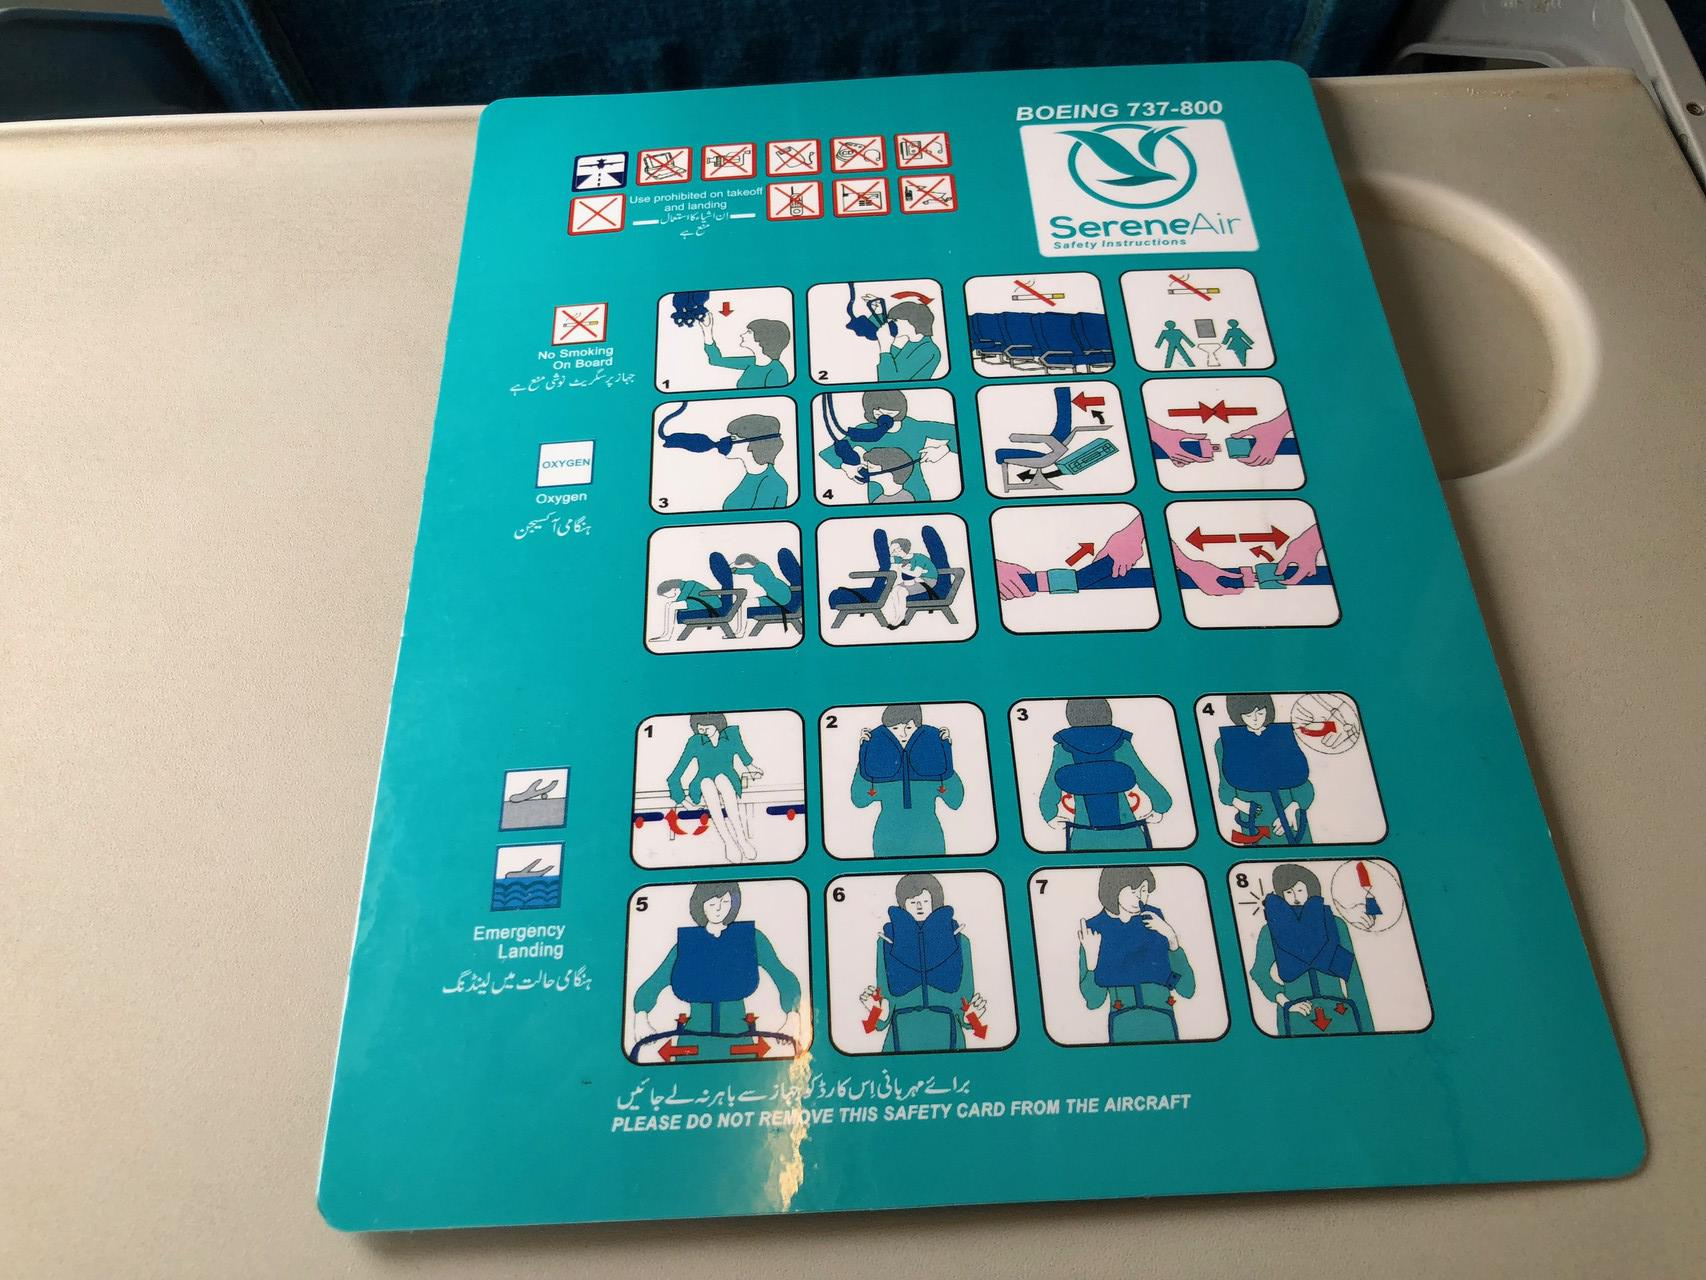 Review of Serene Air flight from Karachi to Islamabad in Economy